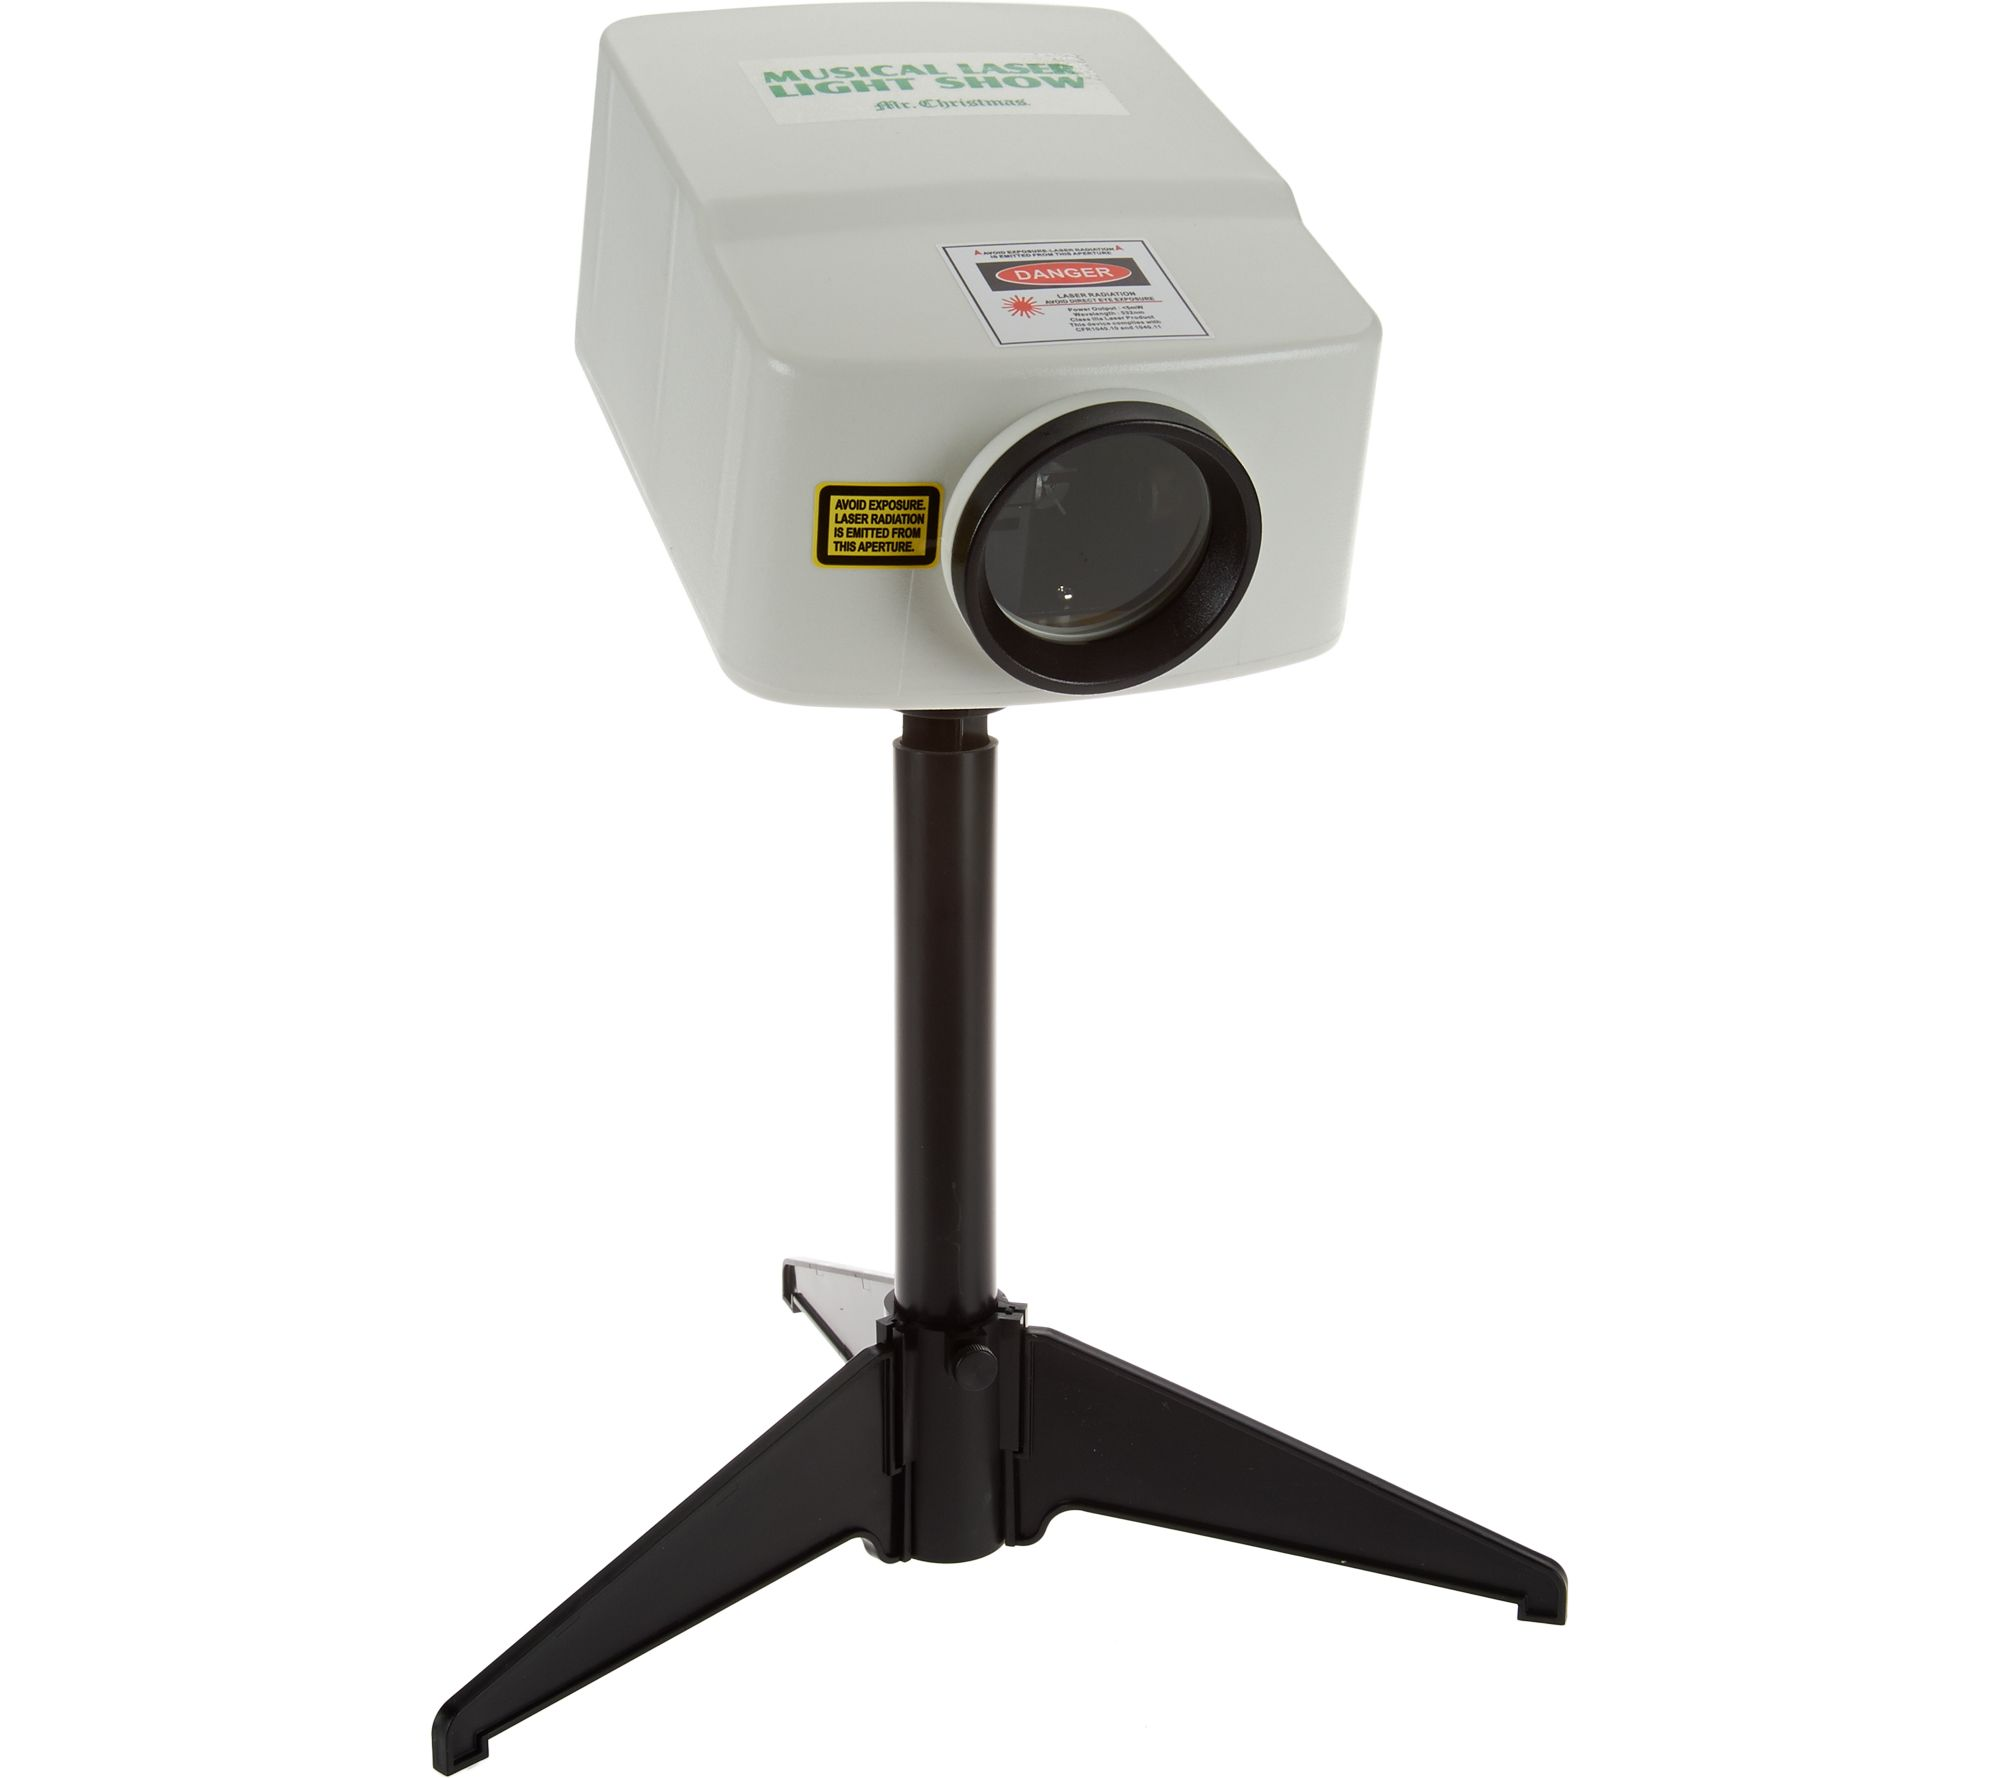 Mr Christmas Projector.As Is Mr Christmas Laser Light And Sound Animated Show Projector Qvc Com